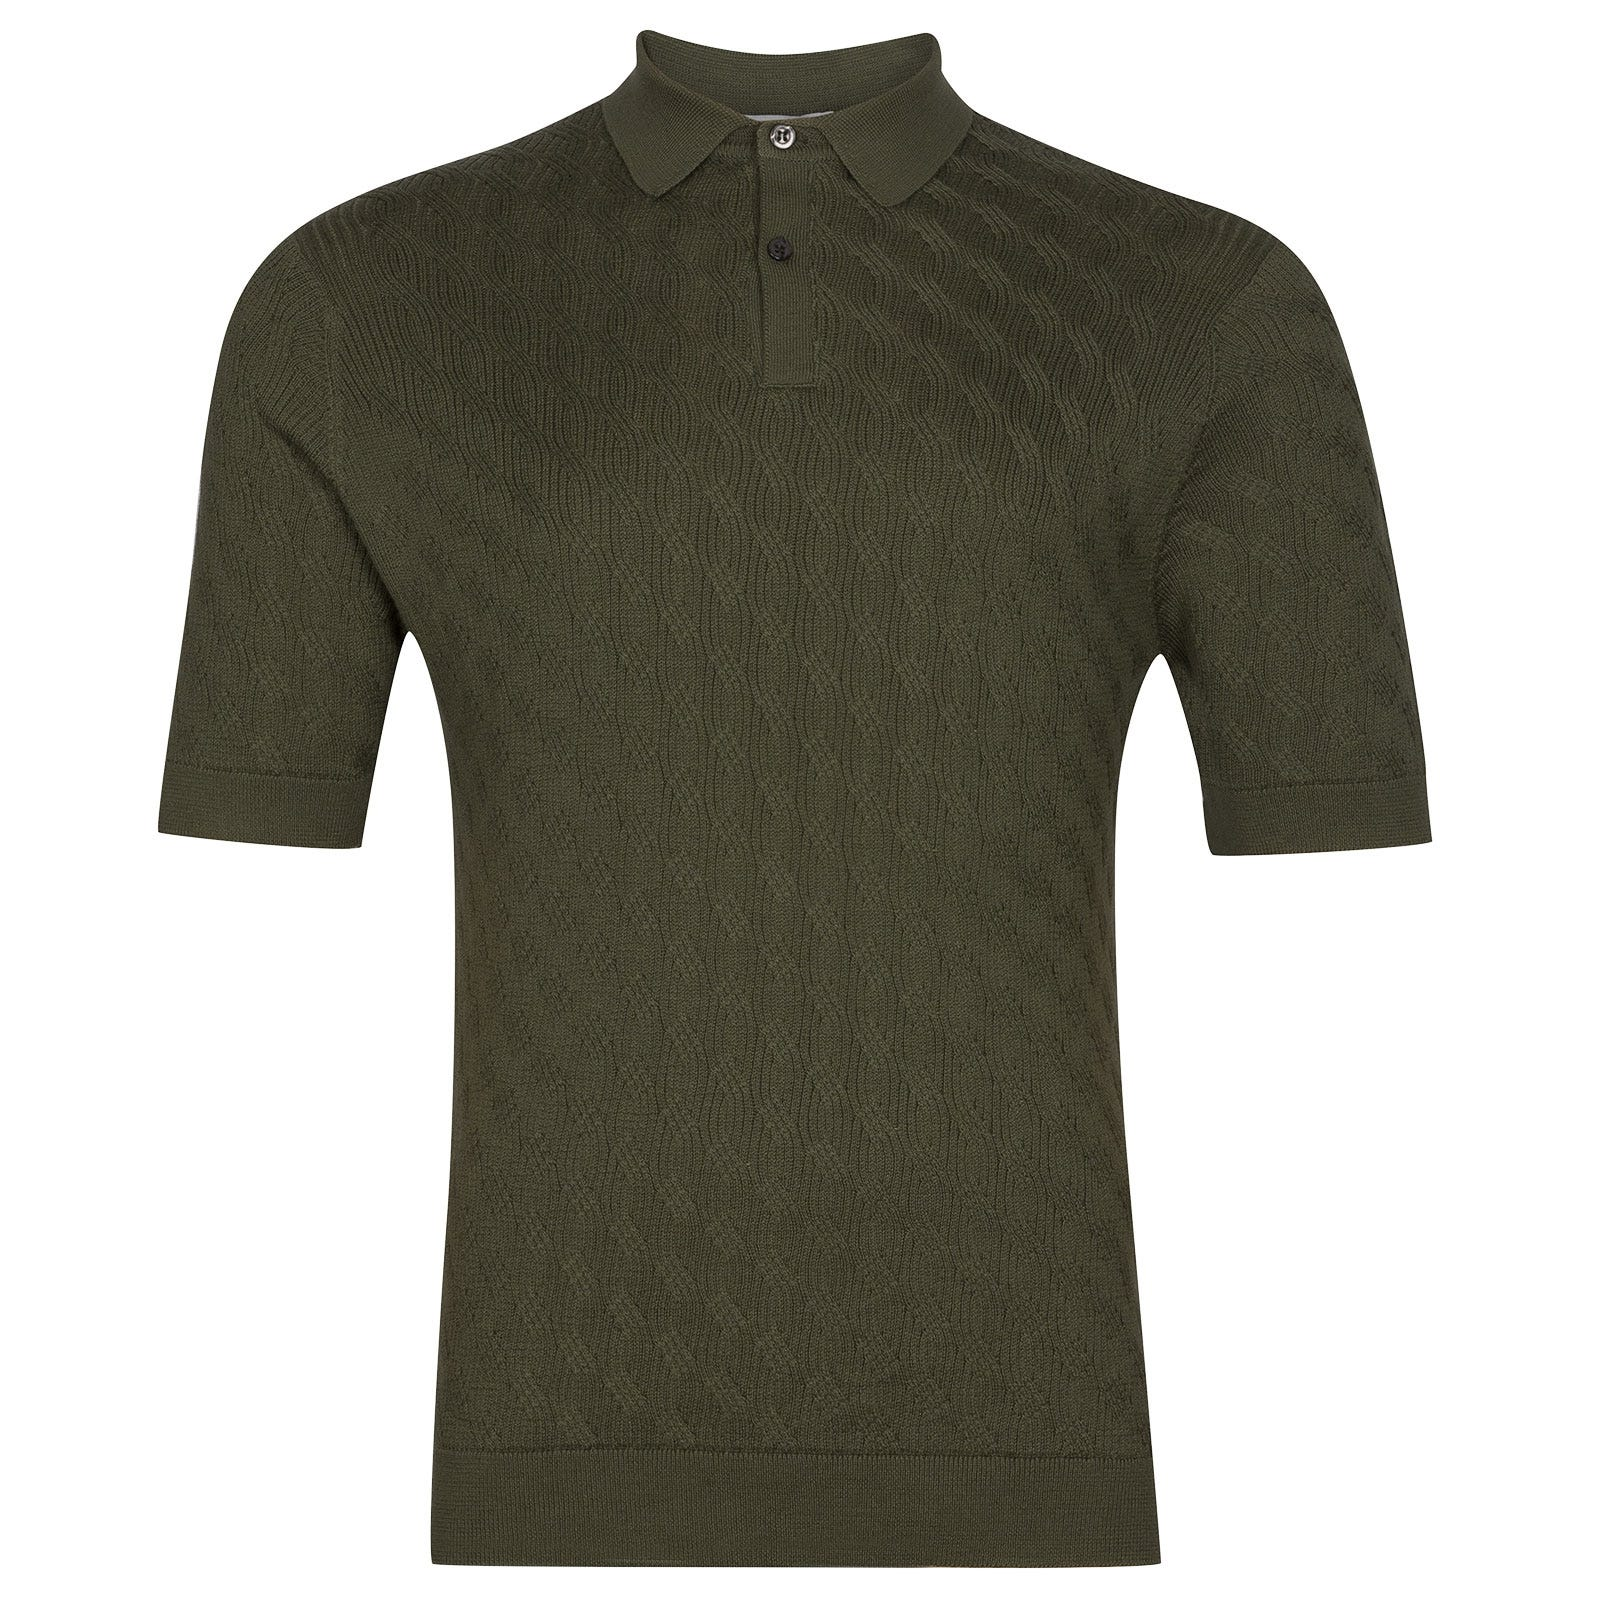 John Smedley Popplewell in Sepal Green Shirt-SML